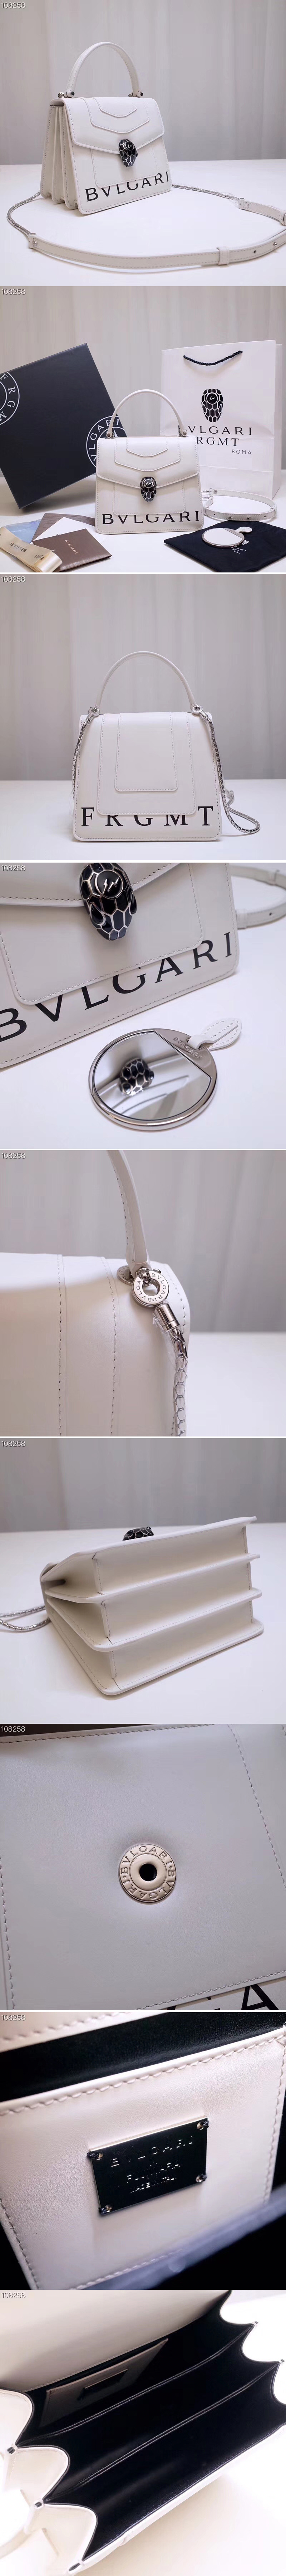 Replica Bvlgari Serpenti Forever 38329 Crossbody Bags White Calf Leather With Print